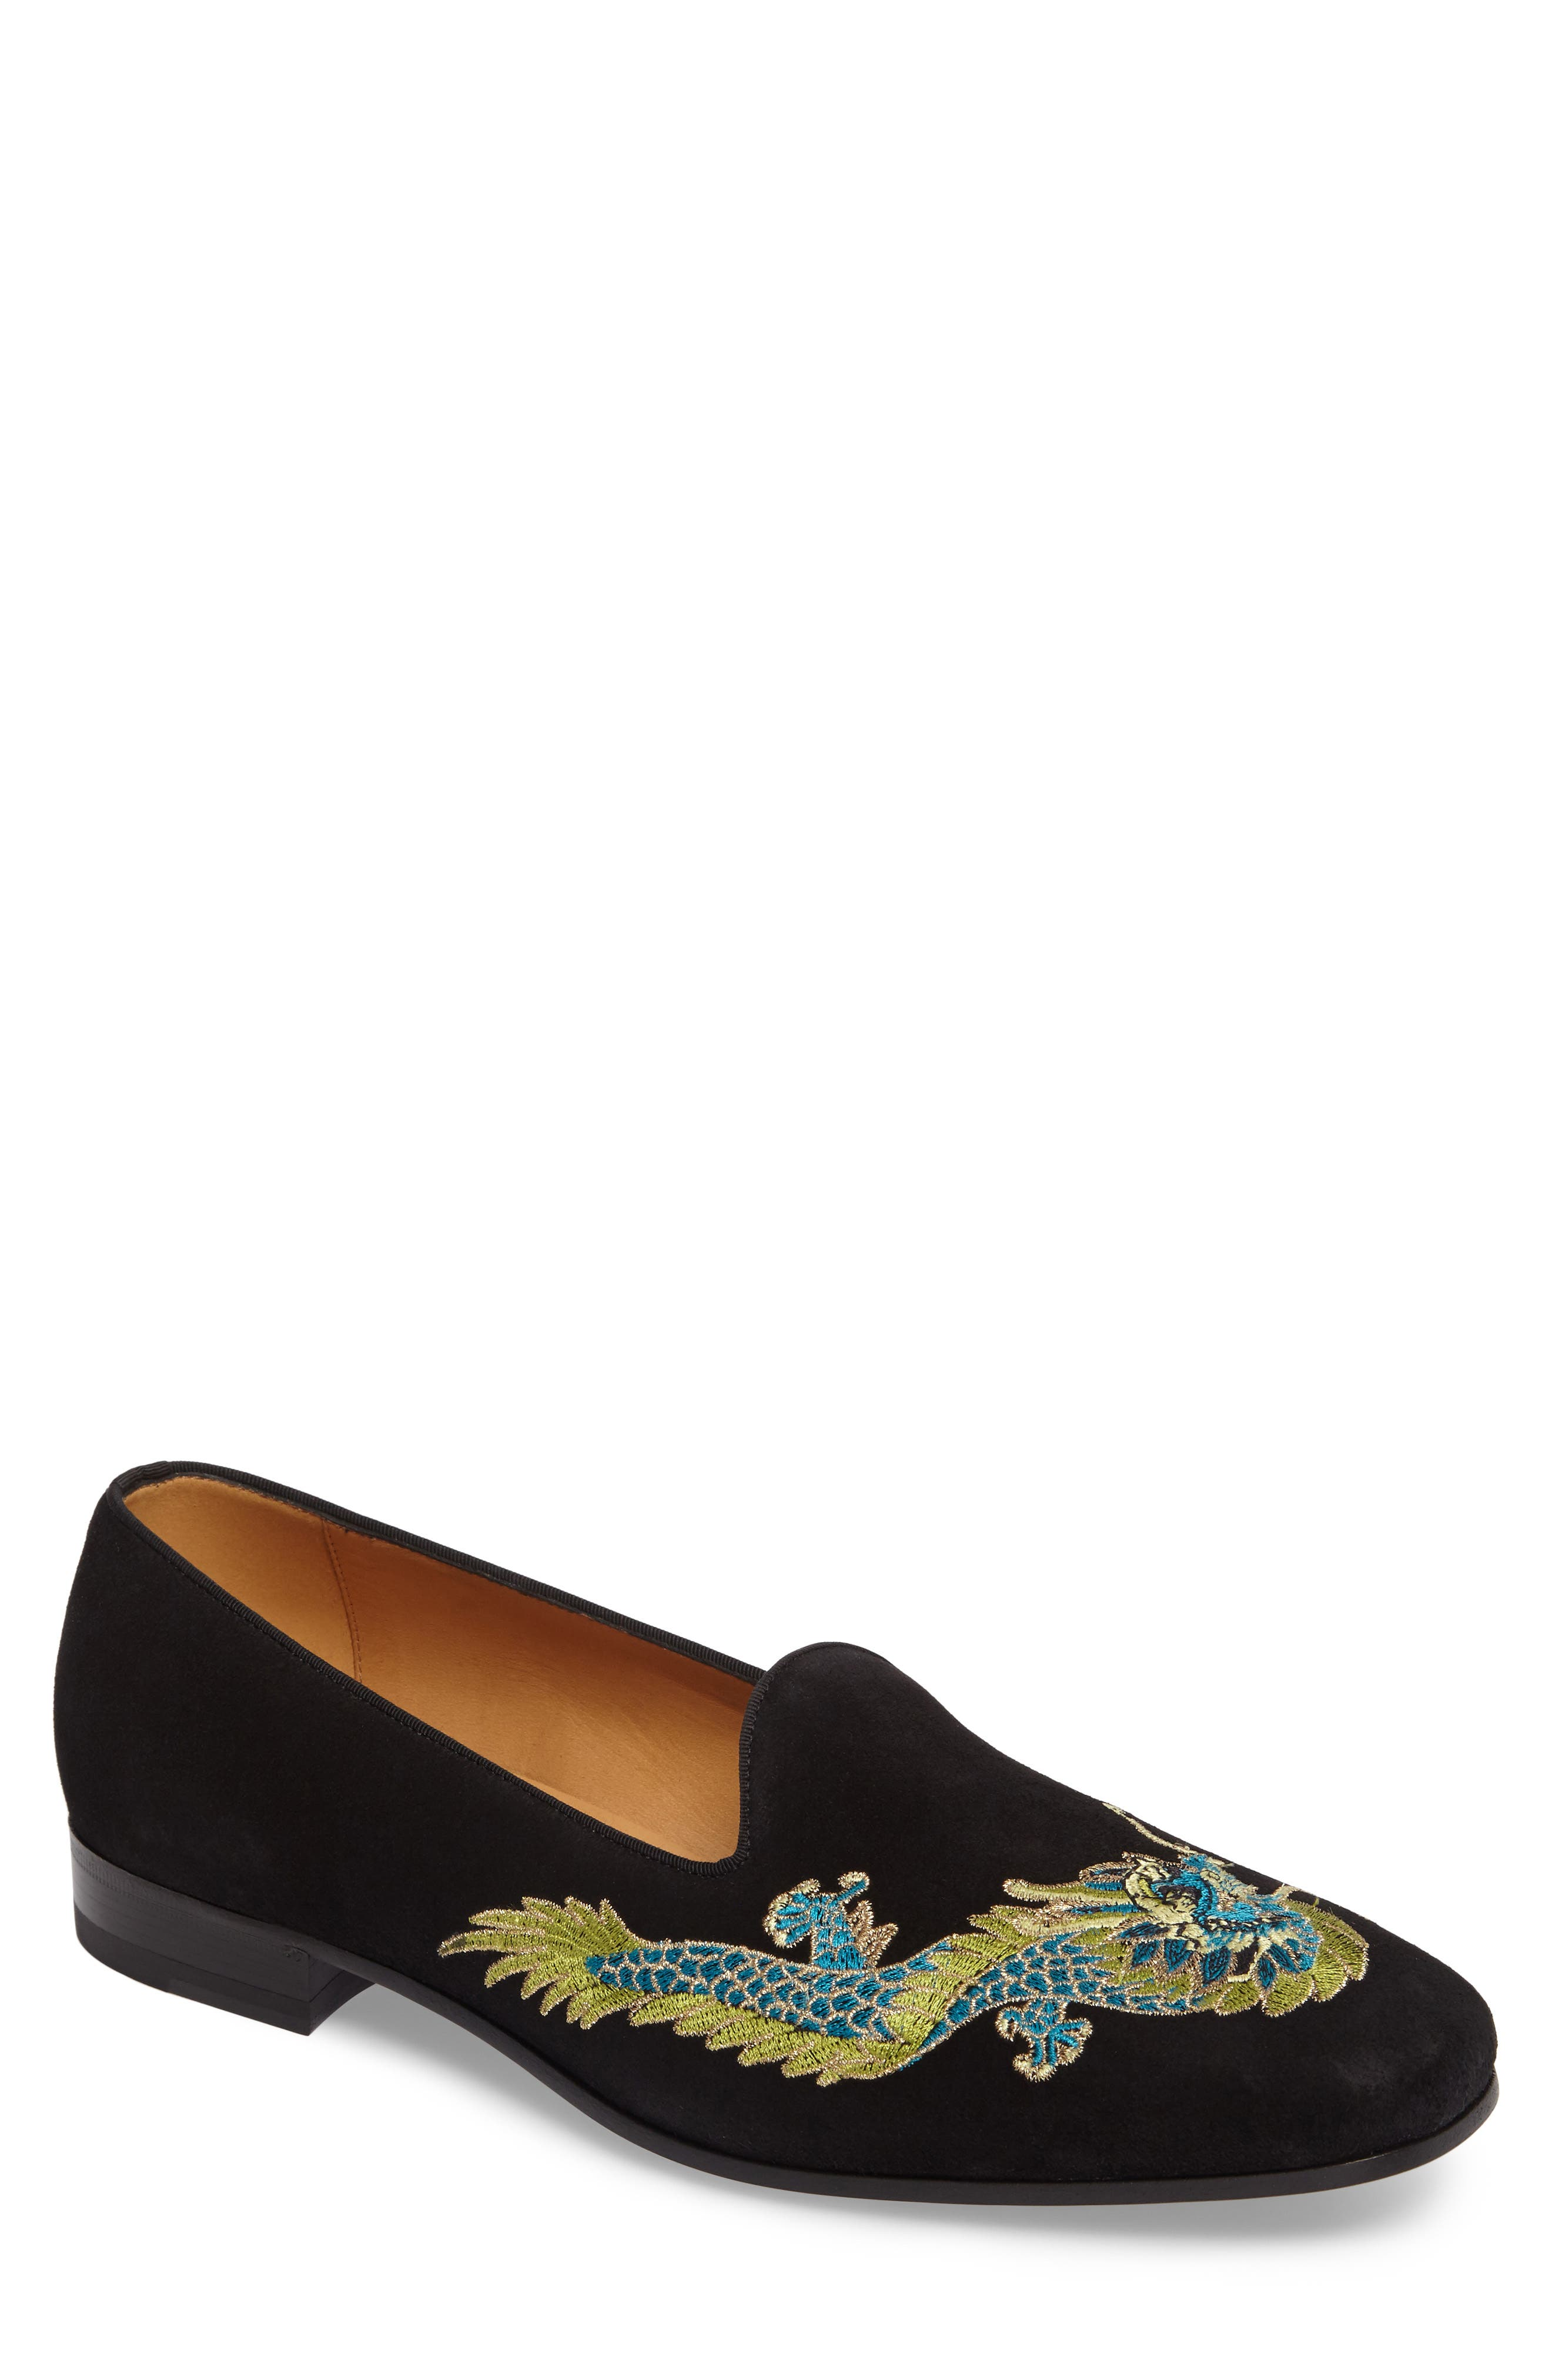 Dragon Embroidered Suede Loafer,                             Main thumbnail 1, color,                             001